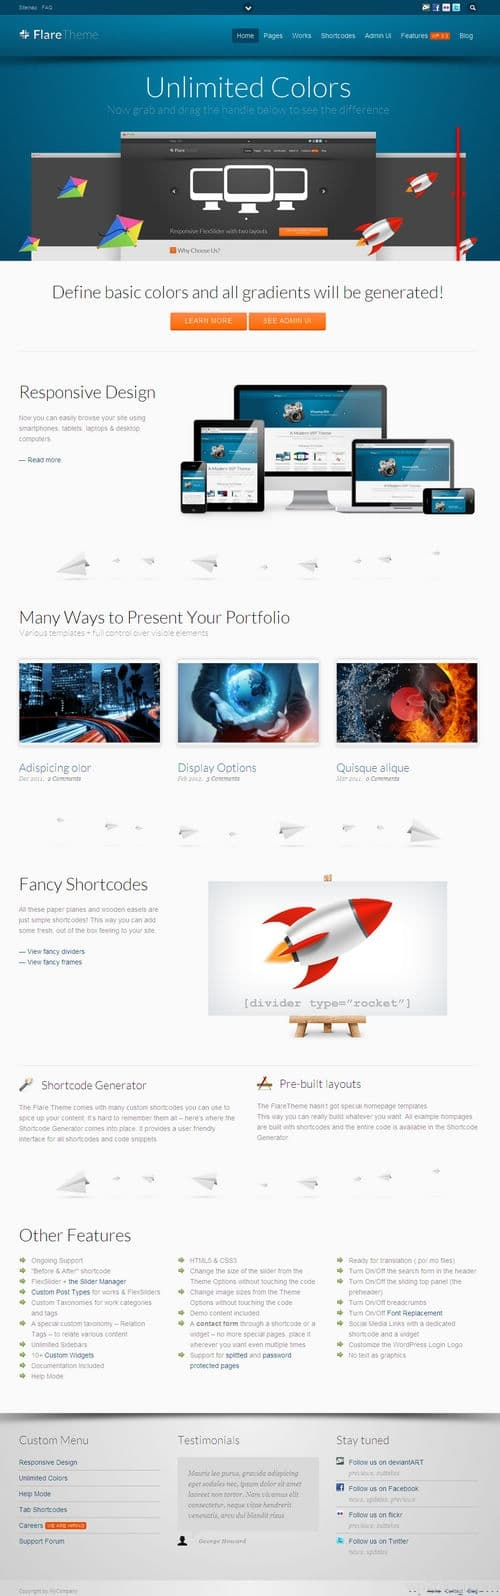 Flare WordPress Theme